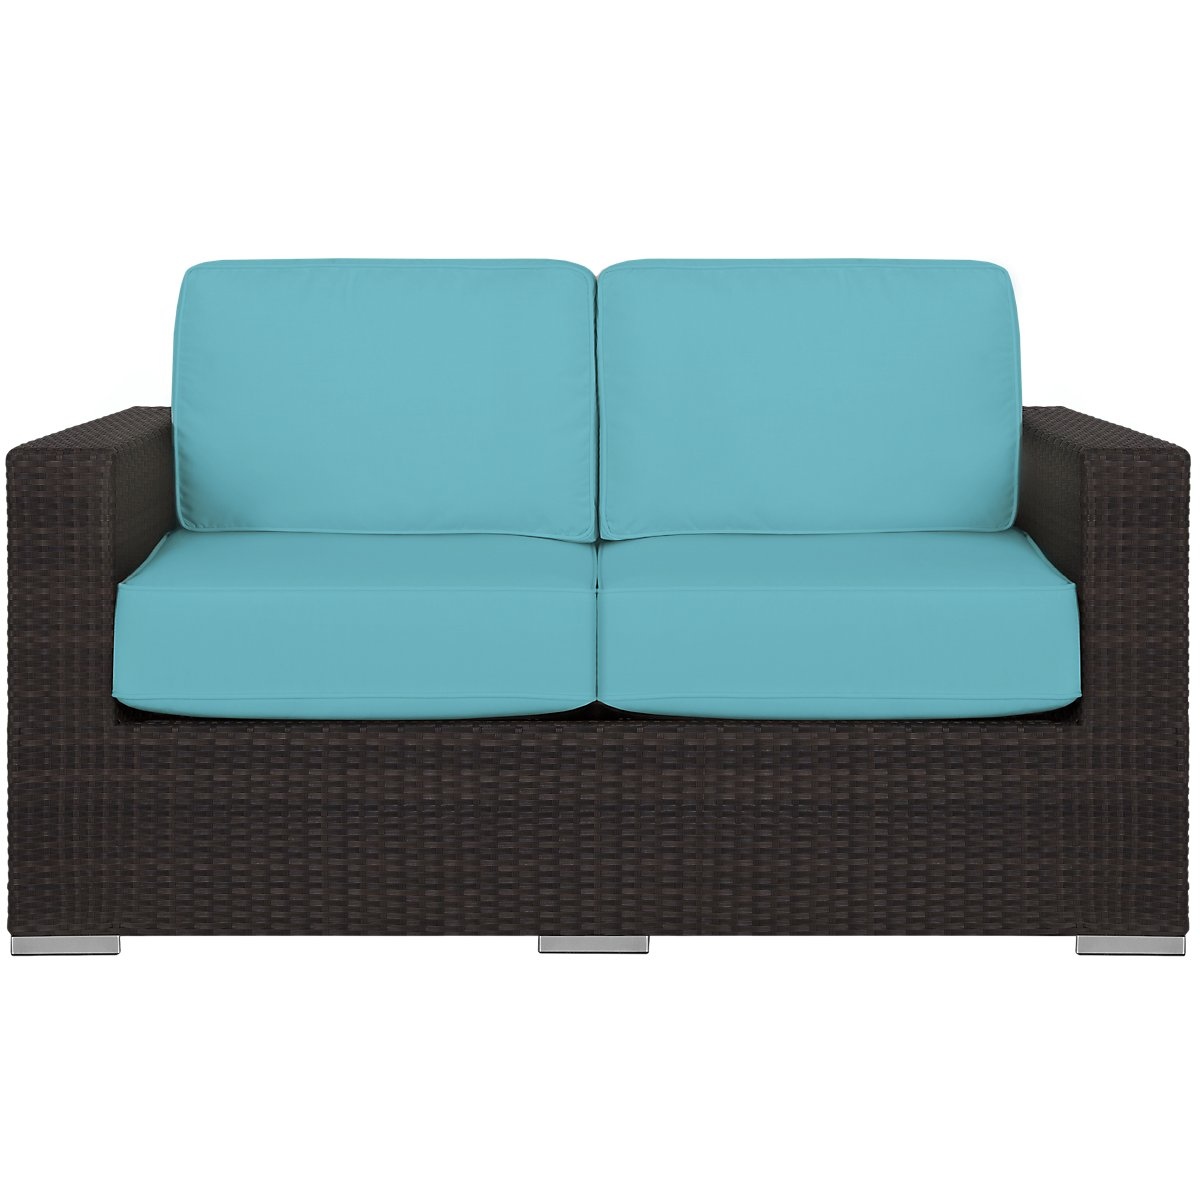 City Furniture Fina Dark Teal Loveseat